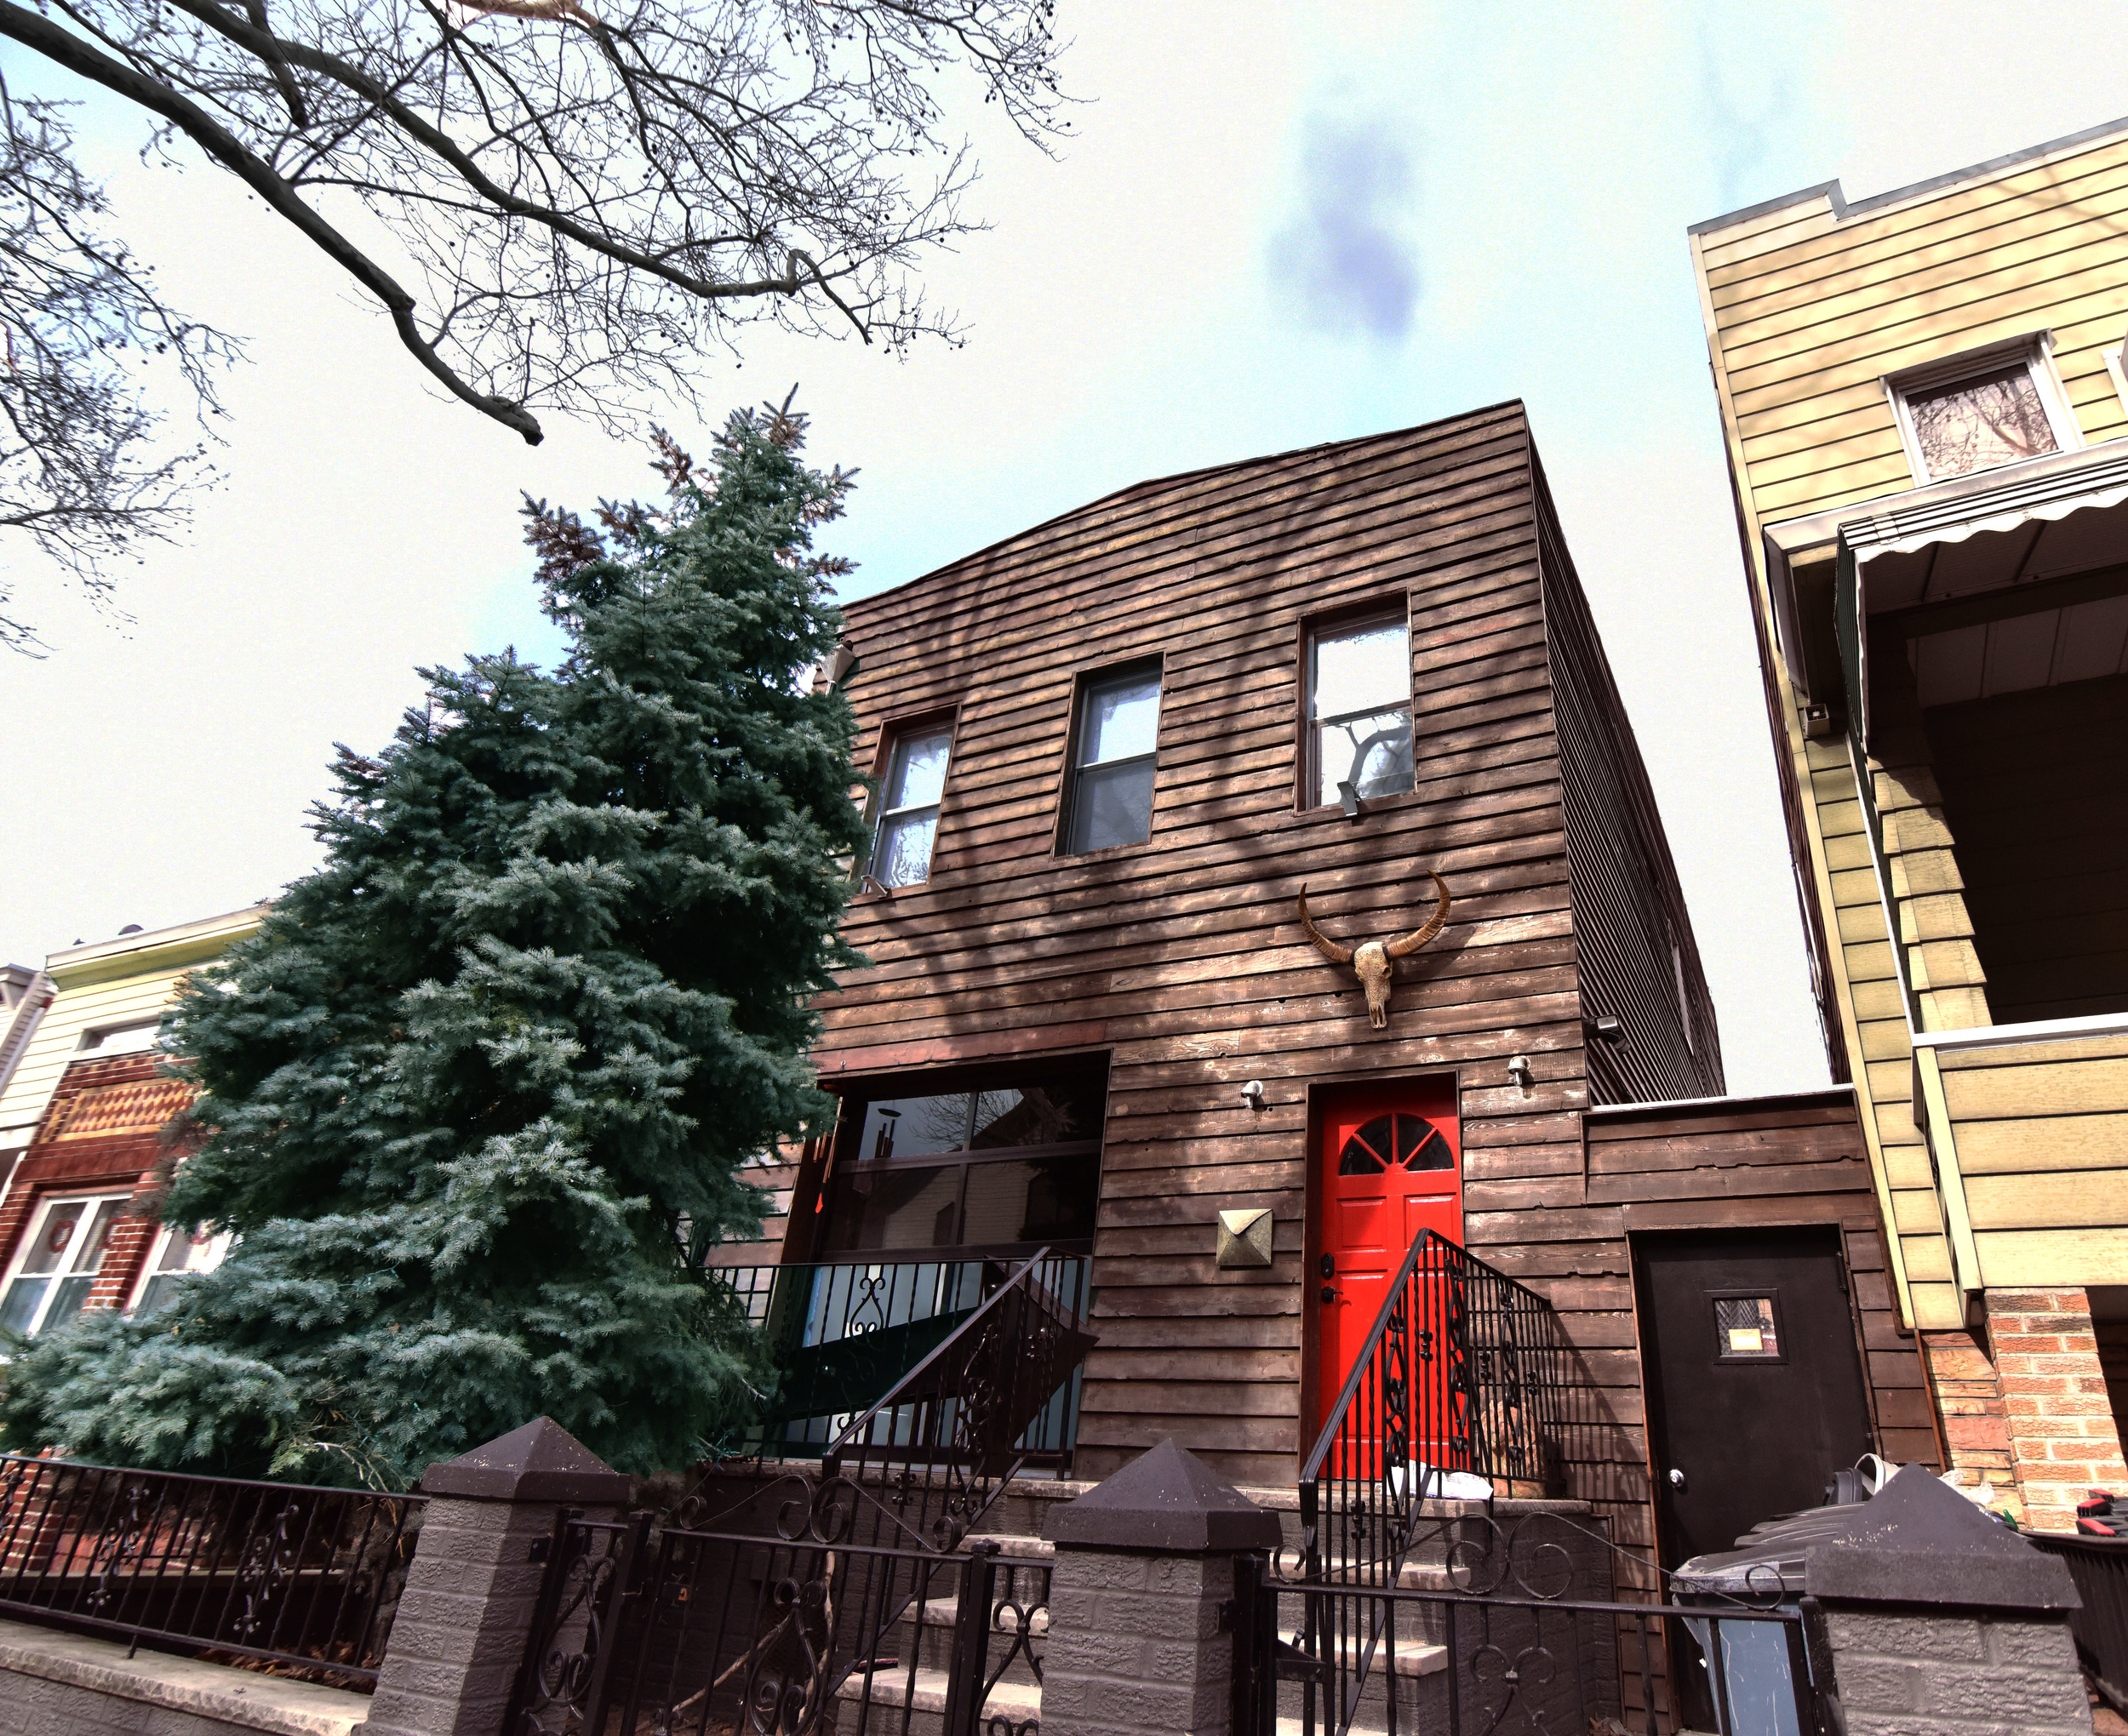 Sold | Williamsburg | 2 Fam | 1,350,000